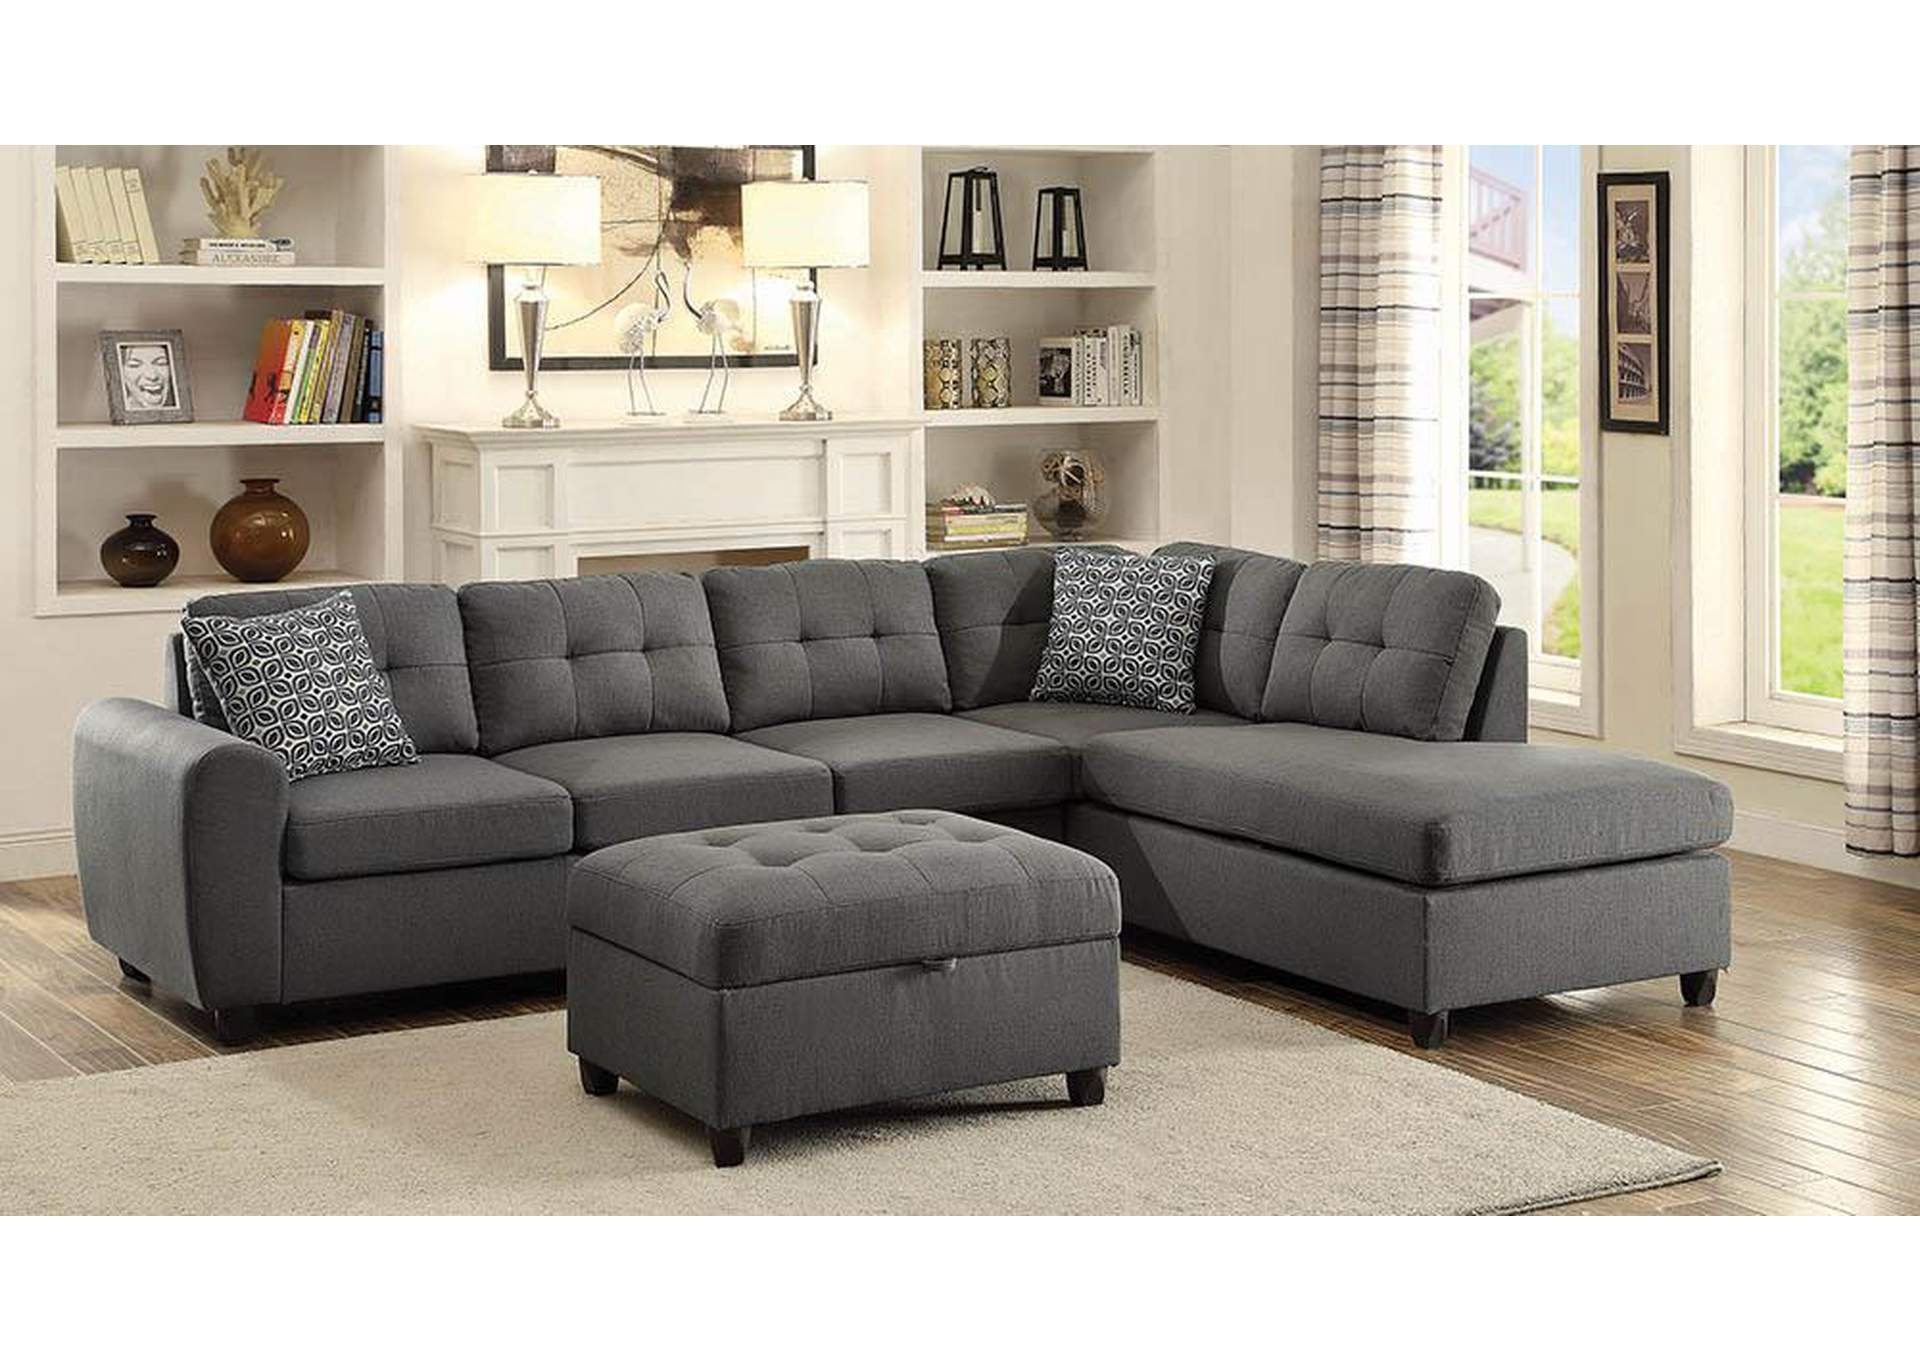 Stonenesse Grey Sectional,Coaster Furniture